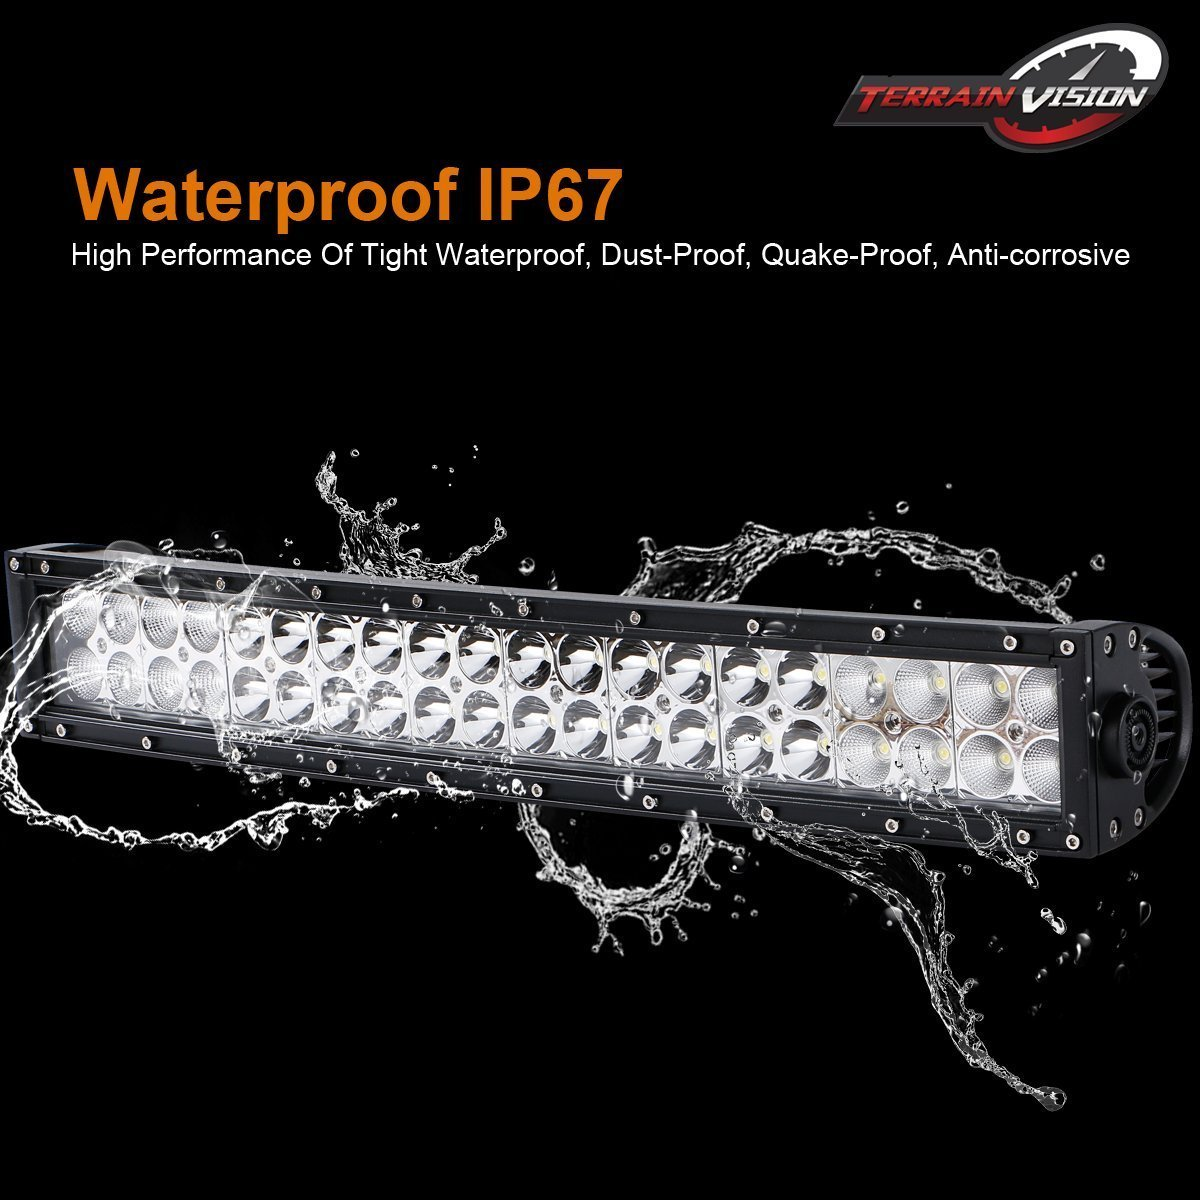 Terrain Vision Curved 24 22 Inch Led Light Bar 120w Toyota Echo Fuse Box Key For Bumper Grill Guard 4 18w Cube Pods Off Road Driving Lamps Remote Switch Wiring